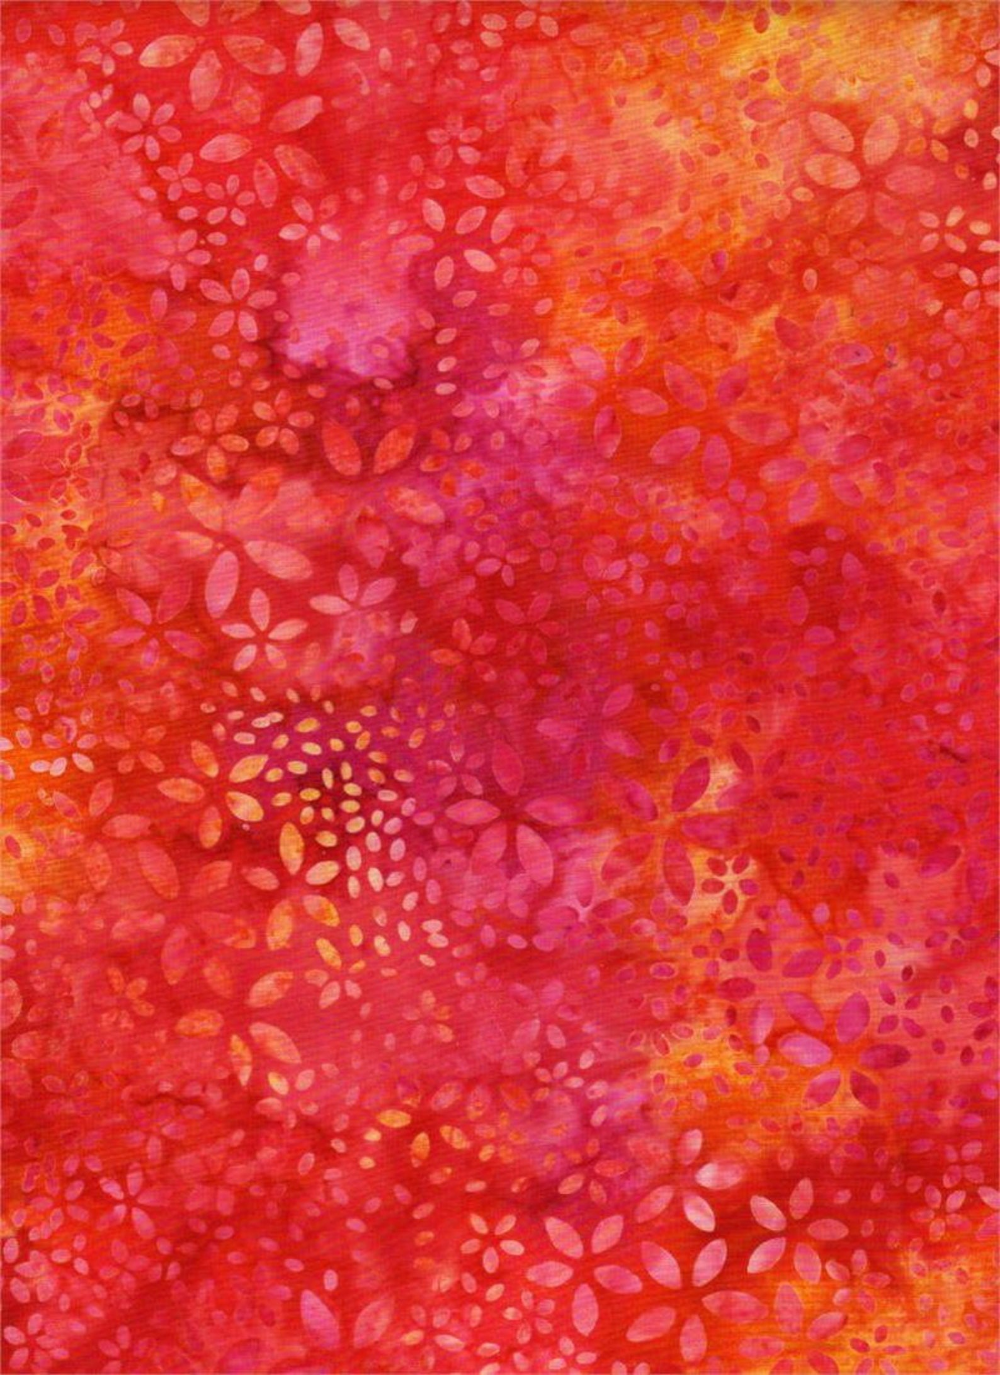 Indonesian Batik Fabric-100/% Cotton Batik Fabric-Quilting Batik-Red